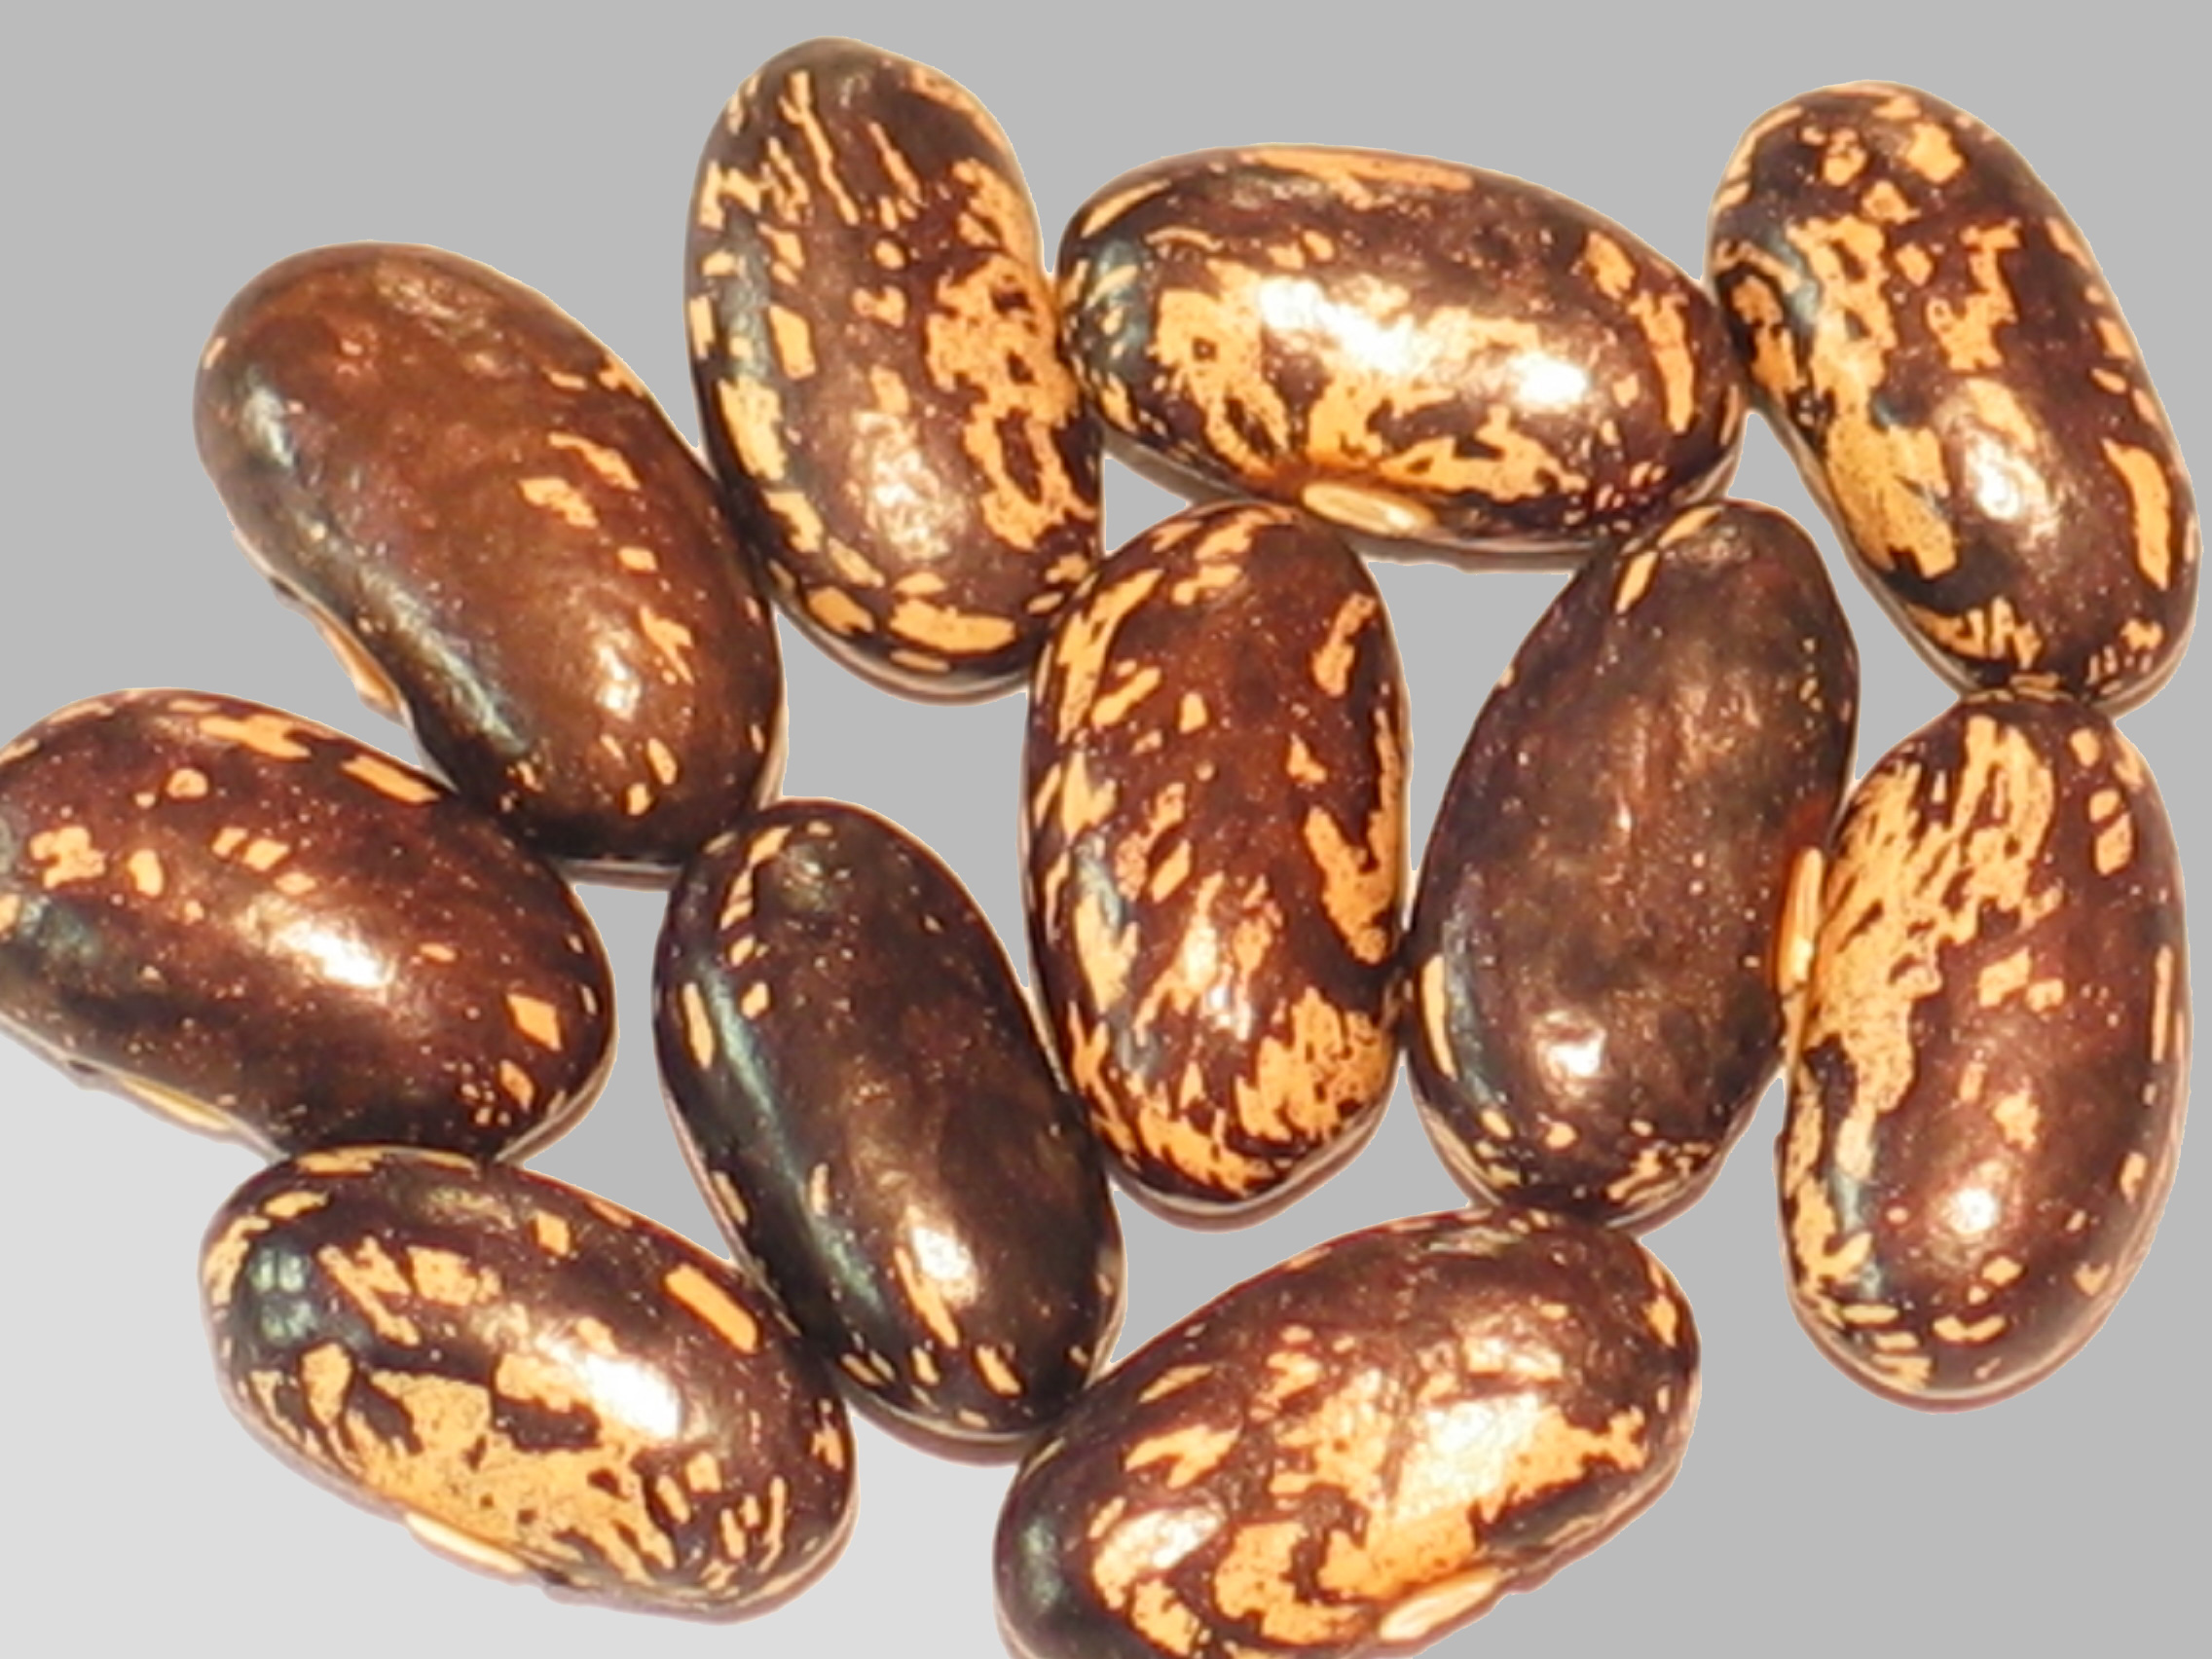 image of Preston's Old Family Heirloom beans